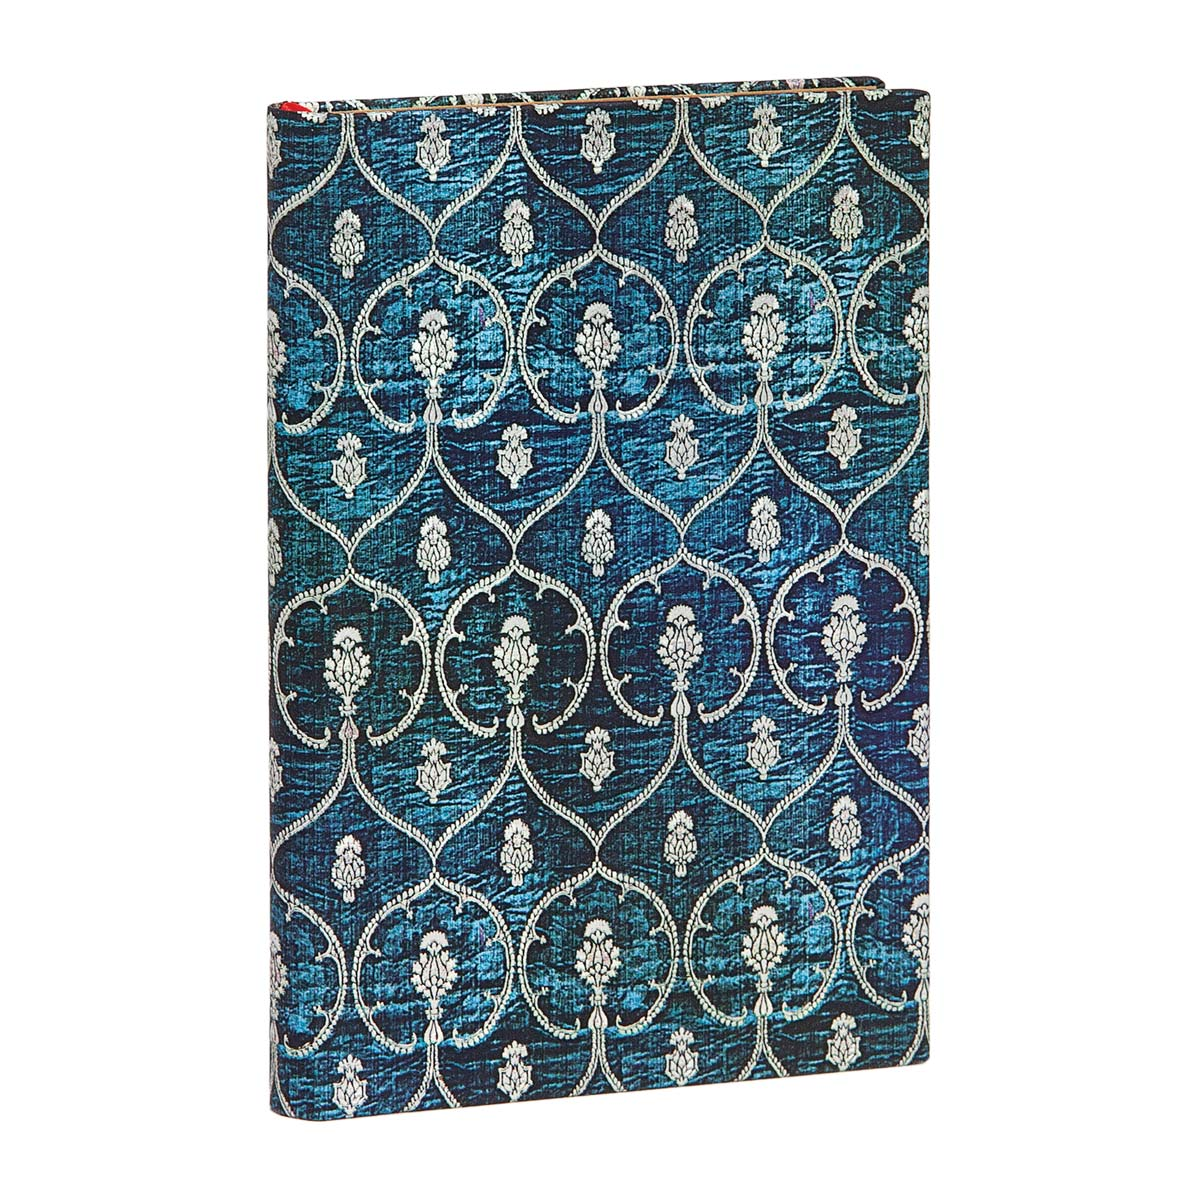 Paperblanks Blue Velvet Mini 3.75 x 5.5 Inch Journal